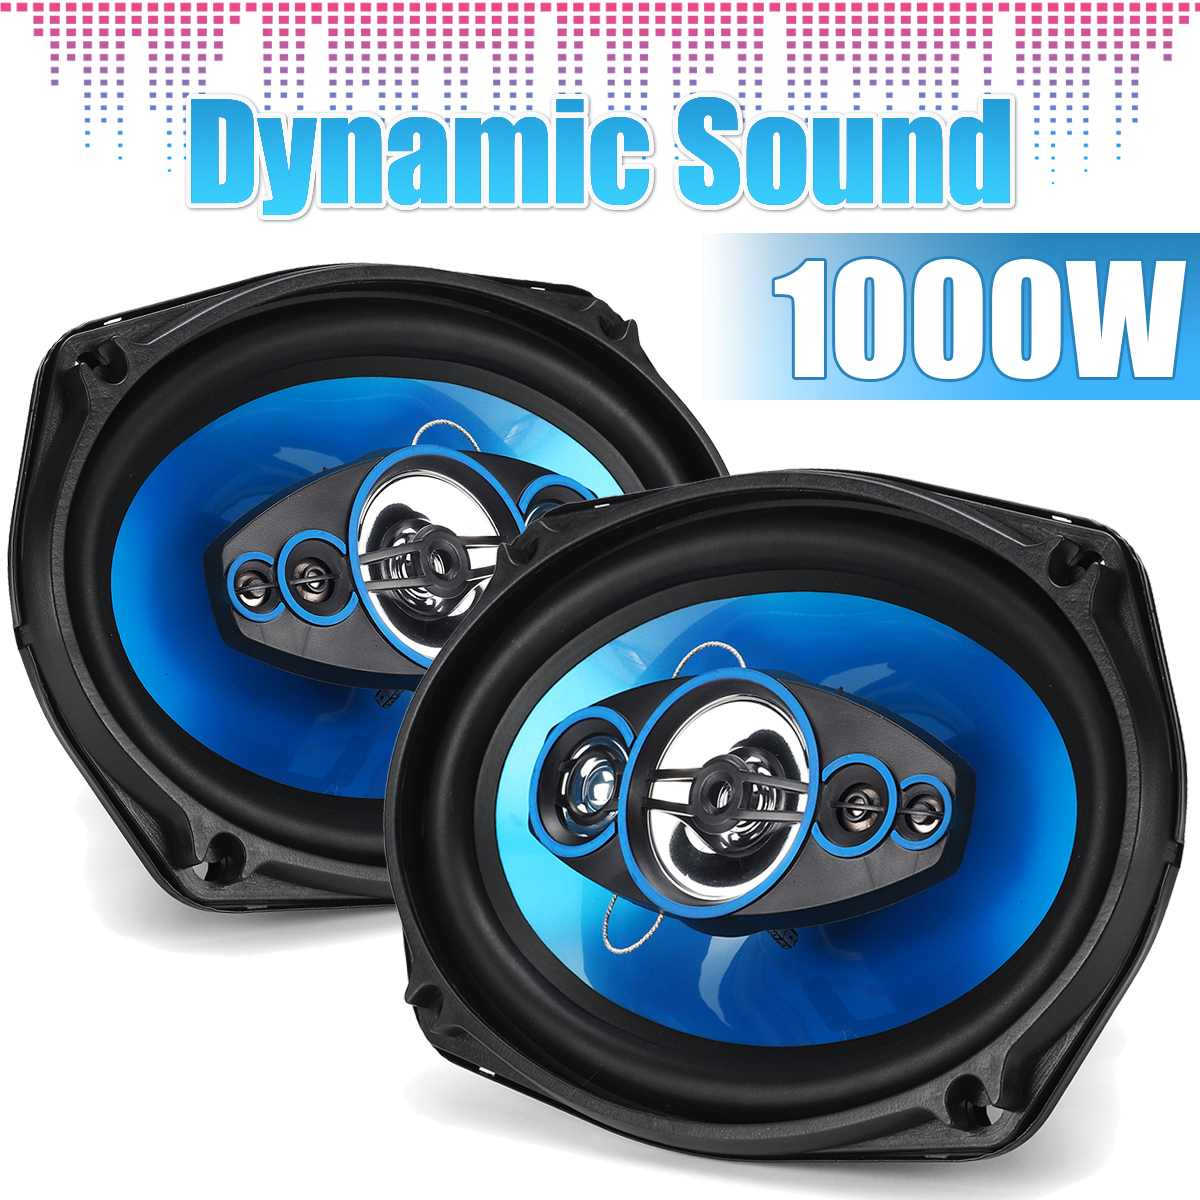 2Pcs 12V Car Speakers And Subwoofer 6x9 Inch 1000W 2-way Auto Vehicle Coaxial Speaker HIFI Audio Horn Universal Loundspeaker